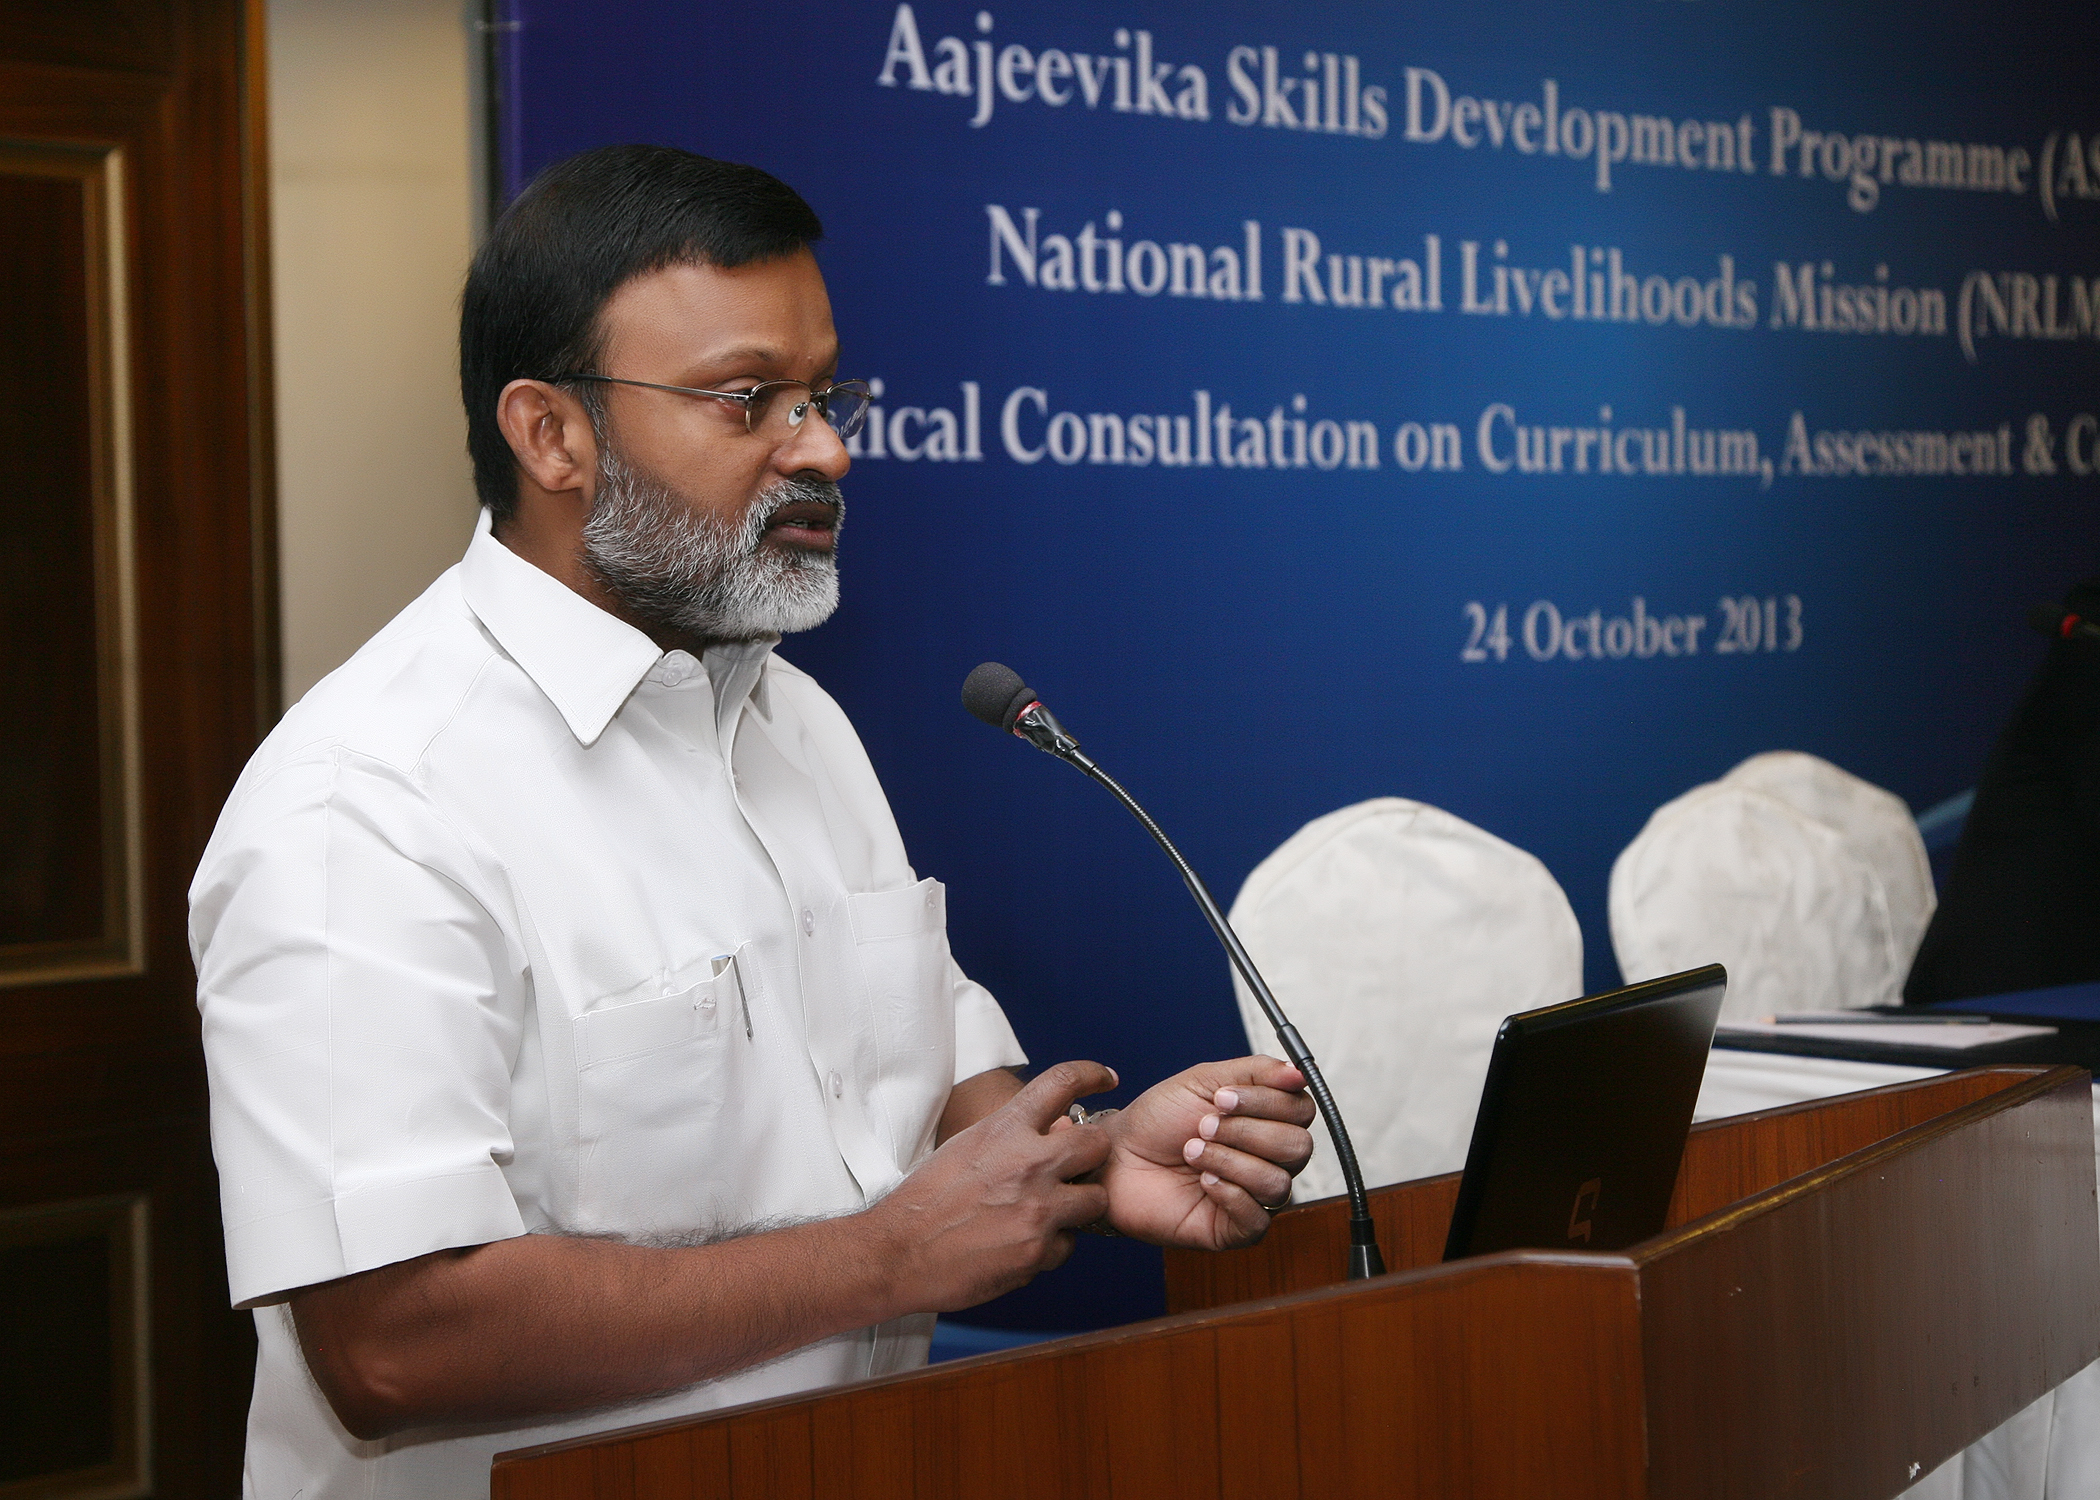 Dr. Santhosh Mathew, JS (Skills) addressing the gathering